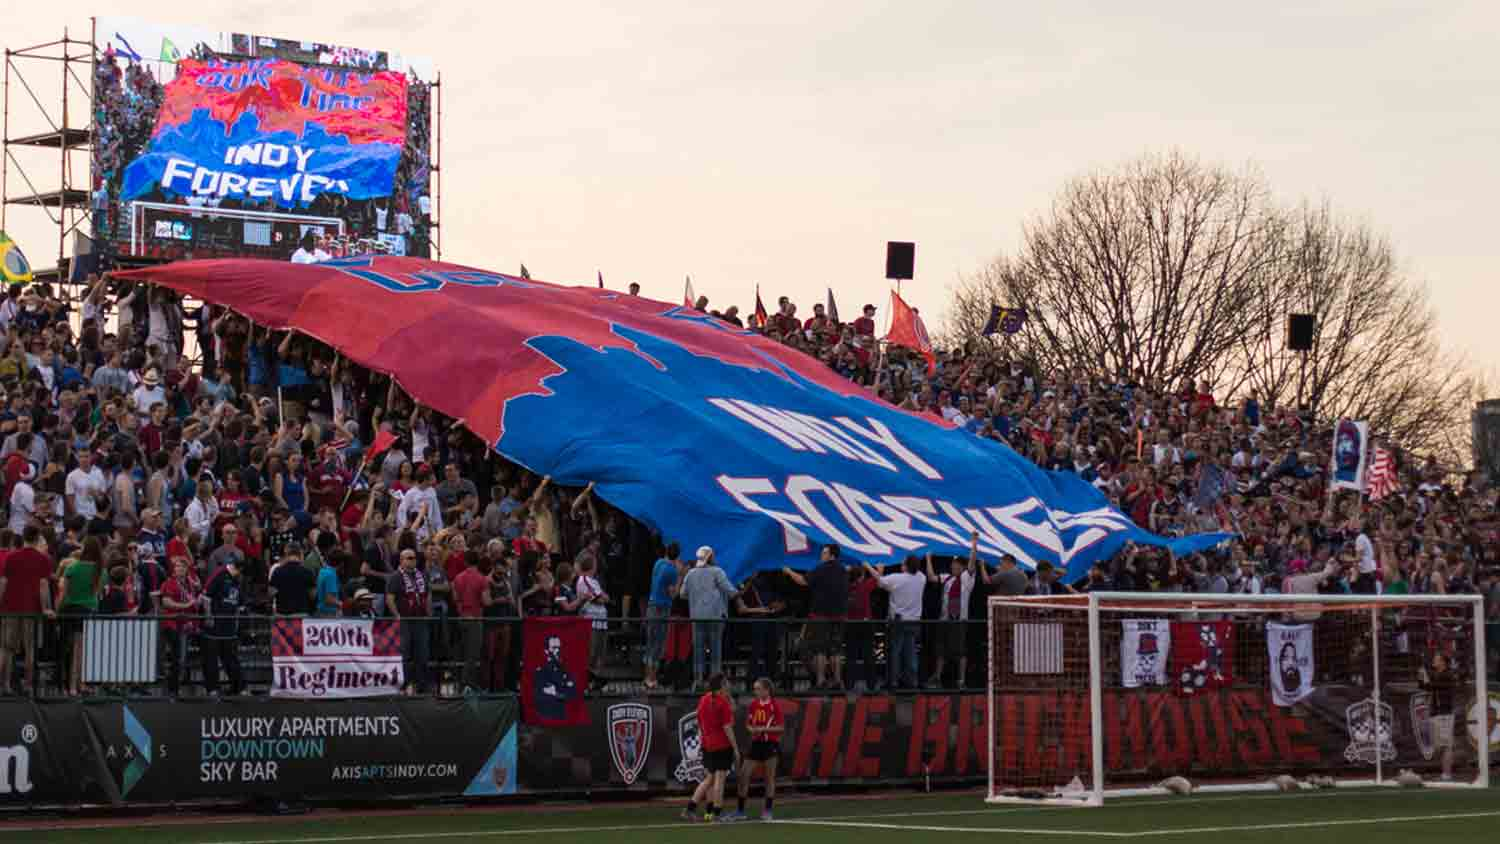 Indy eleven 4